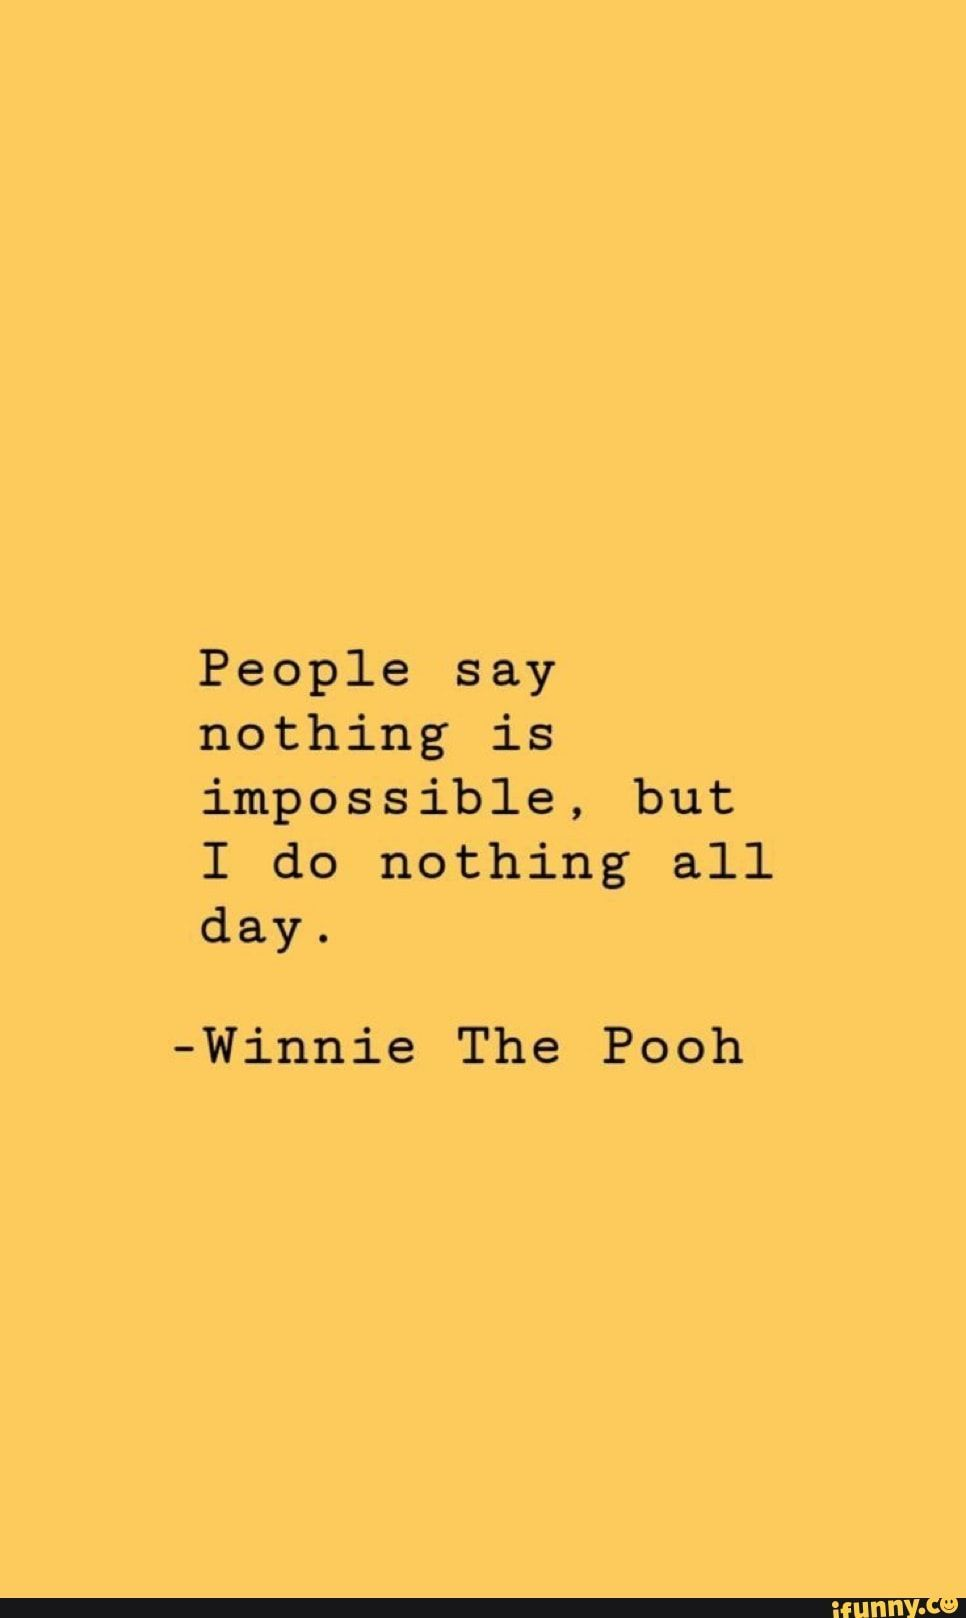 People say nothing is impossible, but I do nothing all day. -Winnie The Pooh - iFunny :)